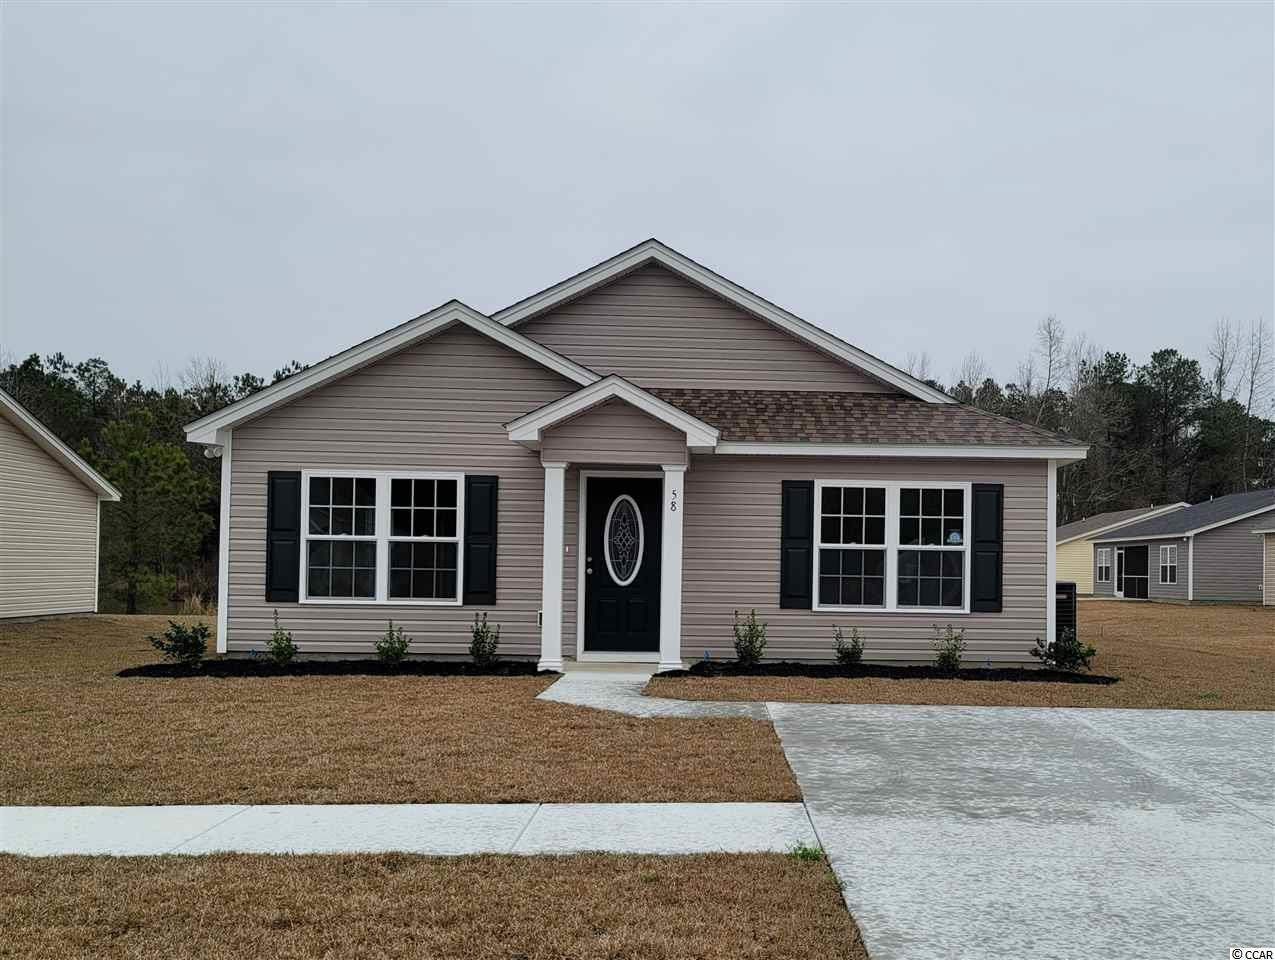 The St. John Model is a one level home with 3 BR 2 Bath, 1200+/- heated sq. ft.  with an open floor plan that features a spacious and comfortable kitchen overlooking the living room. This home feature includes but are not limited to: Low Maintenance Exterior Vinyl Siding. 30 Yr - Architectural shingles , Low E- Vinyl windows. Open Kitchen with Stainless Steel Appliances, Spacious Bedrooms,  5 ft. walk-in shower in Master Bathroom -  cultured marble vanity top in bathrooms. Pictures are of a similar plan model home and are for illustration purposes only. Beverly homes offers home customization and floor plan changes. Georgetown Estates is a premier community conveniently located along HWY 521,  easily access both  downtown Andrews and the Historic Georgetown, SC.  sidewalks wind throughout the community.  Huge oaks and beautiful mature trees surround this gorgeous new community. Come experience the beautiful and sweet life that the low country of South Carolina and Georgetown Estates has to offer! Beverly Homes is a equal opportunity Builder.